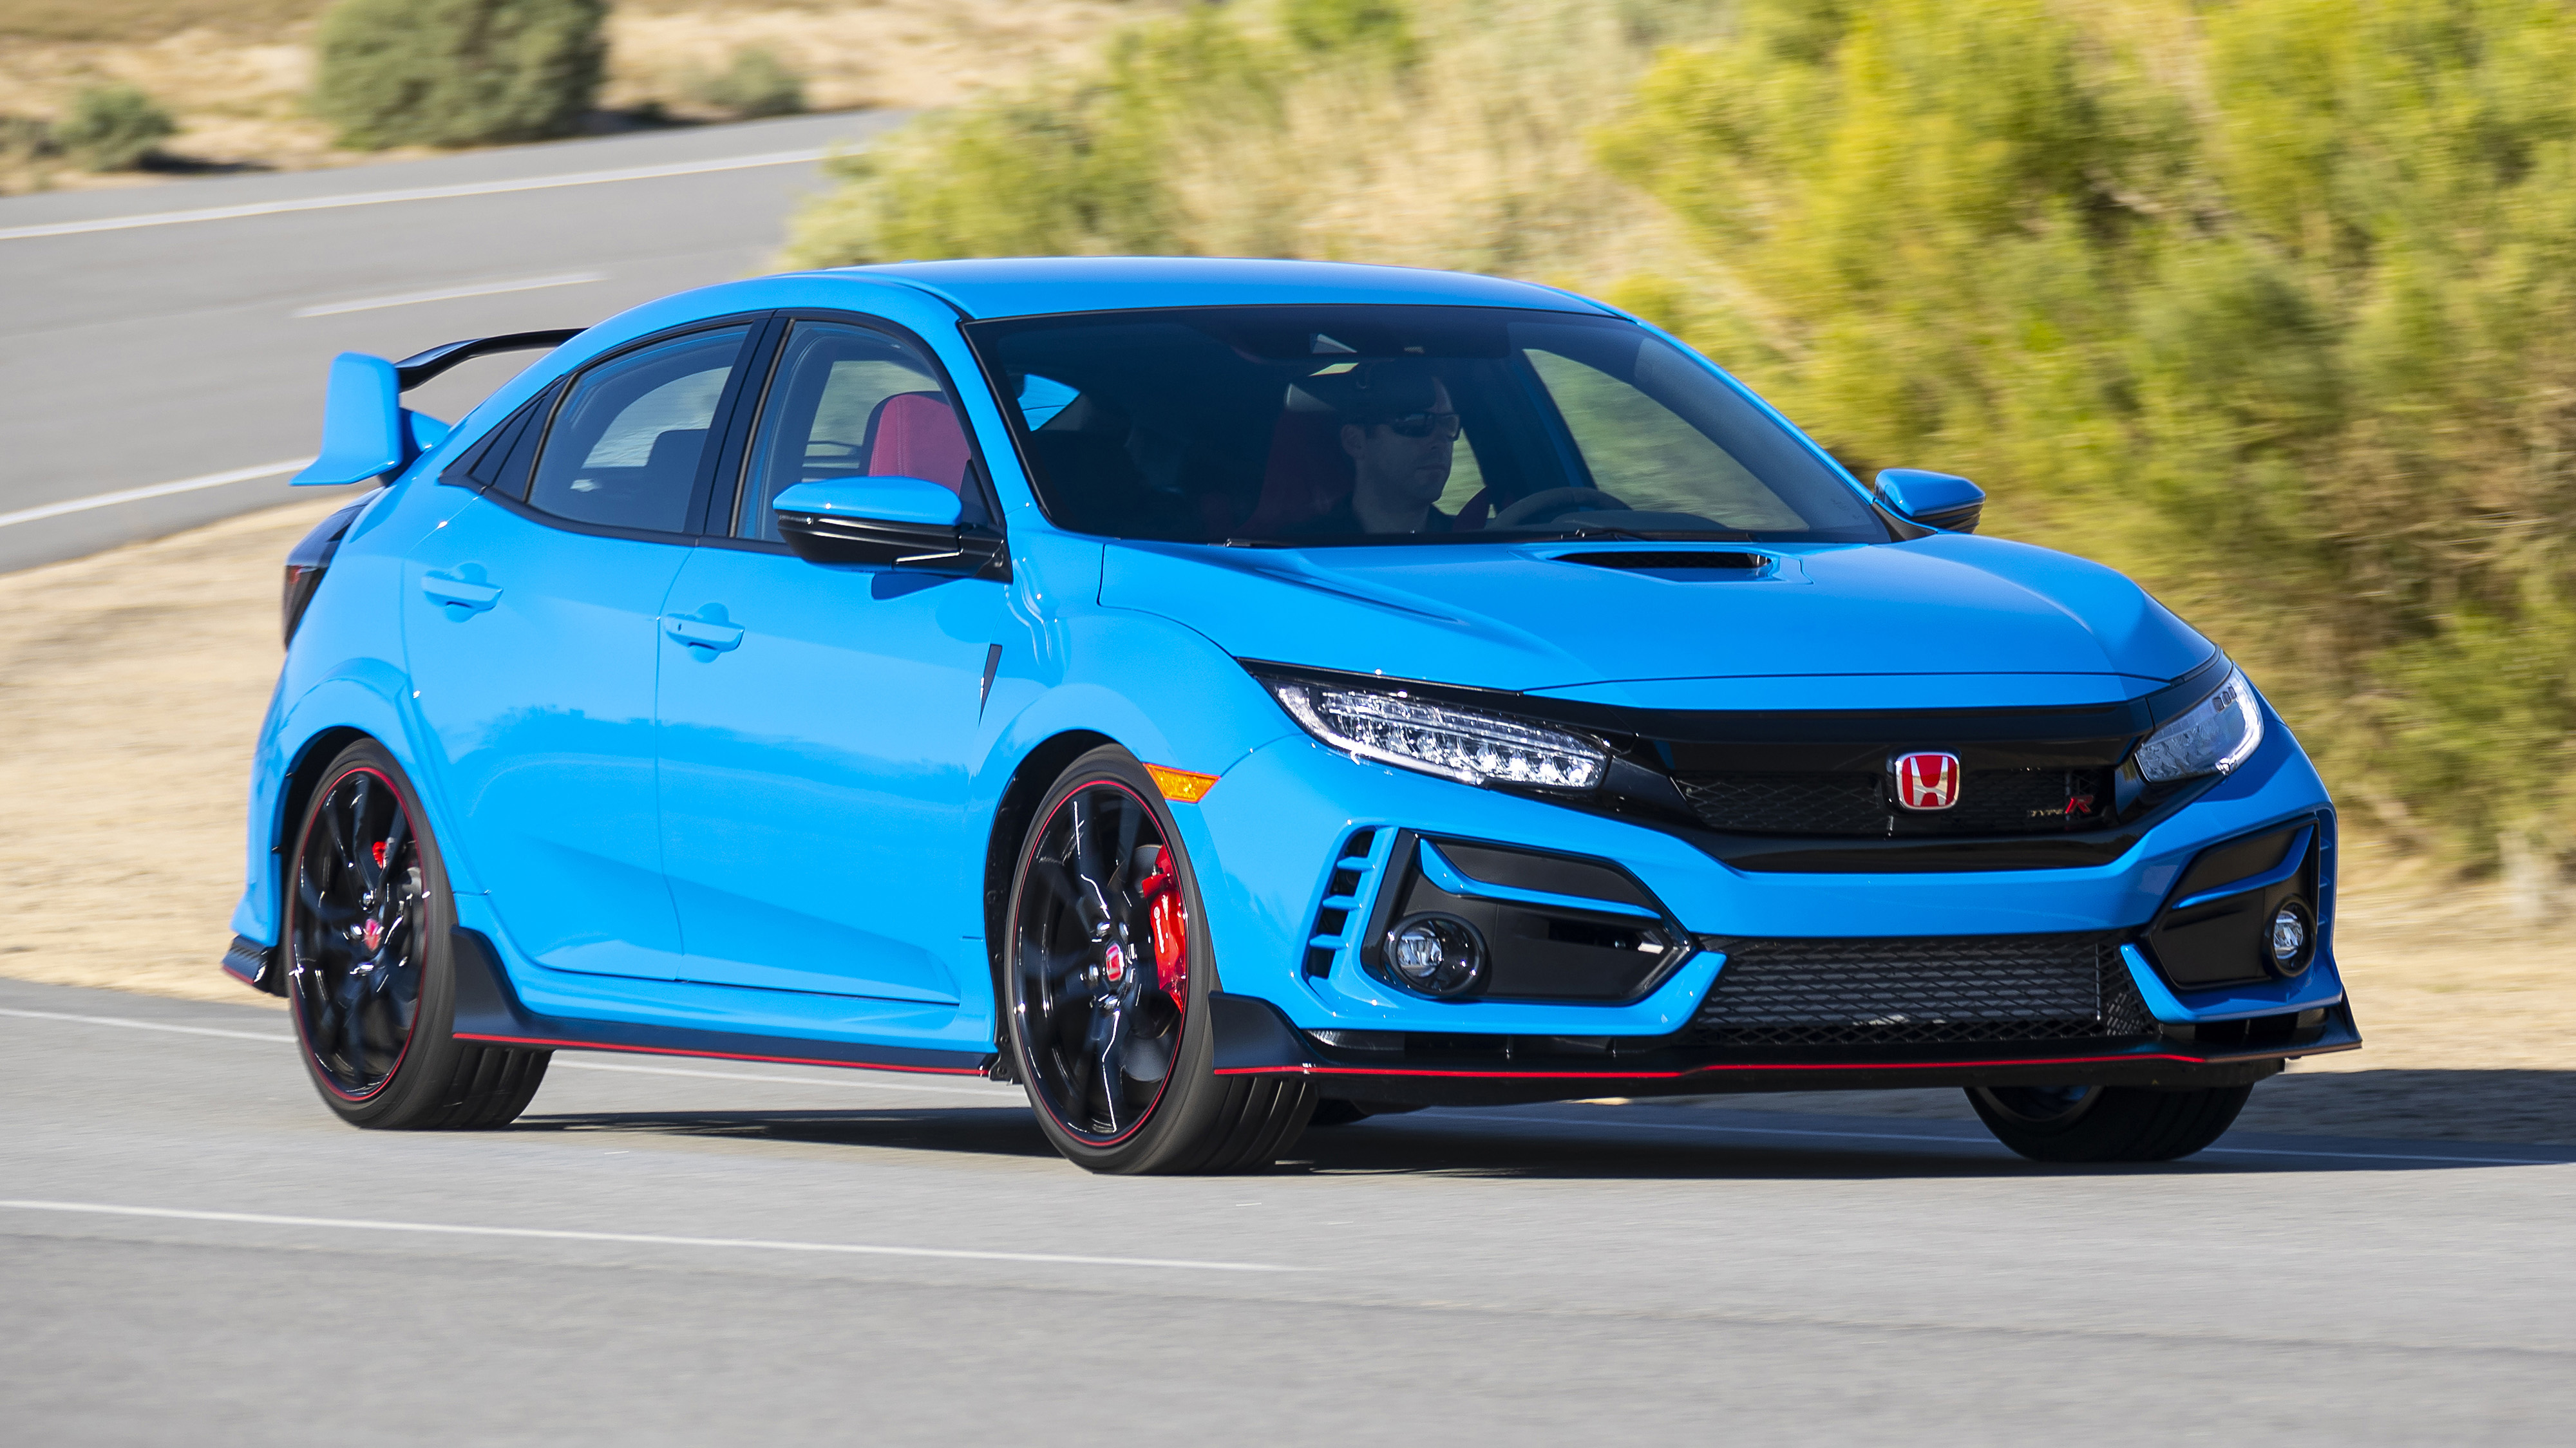 2020 Honda Civic Type R Price and Review